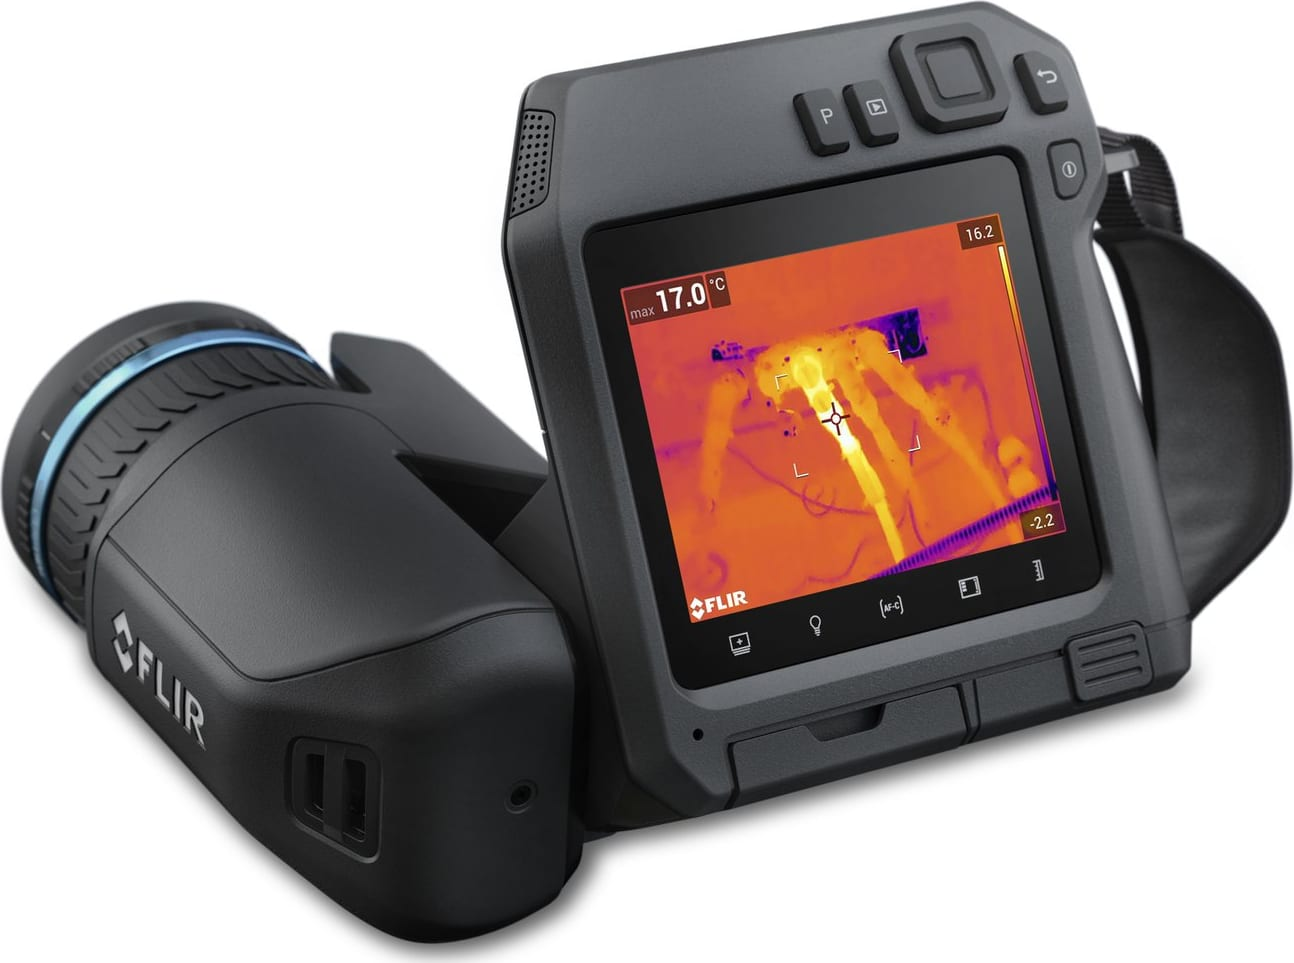 FLIR_T530_24_Thermal_Cameras_With_24_Degree_Lens_Main_View